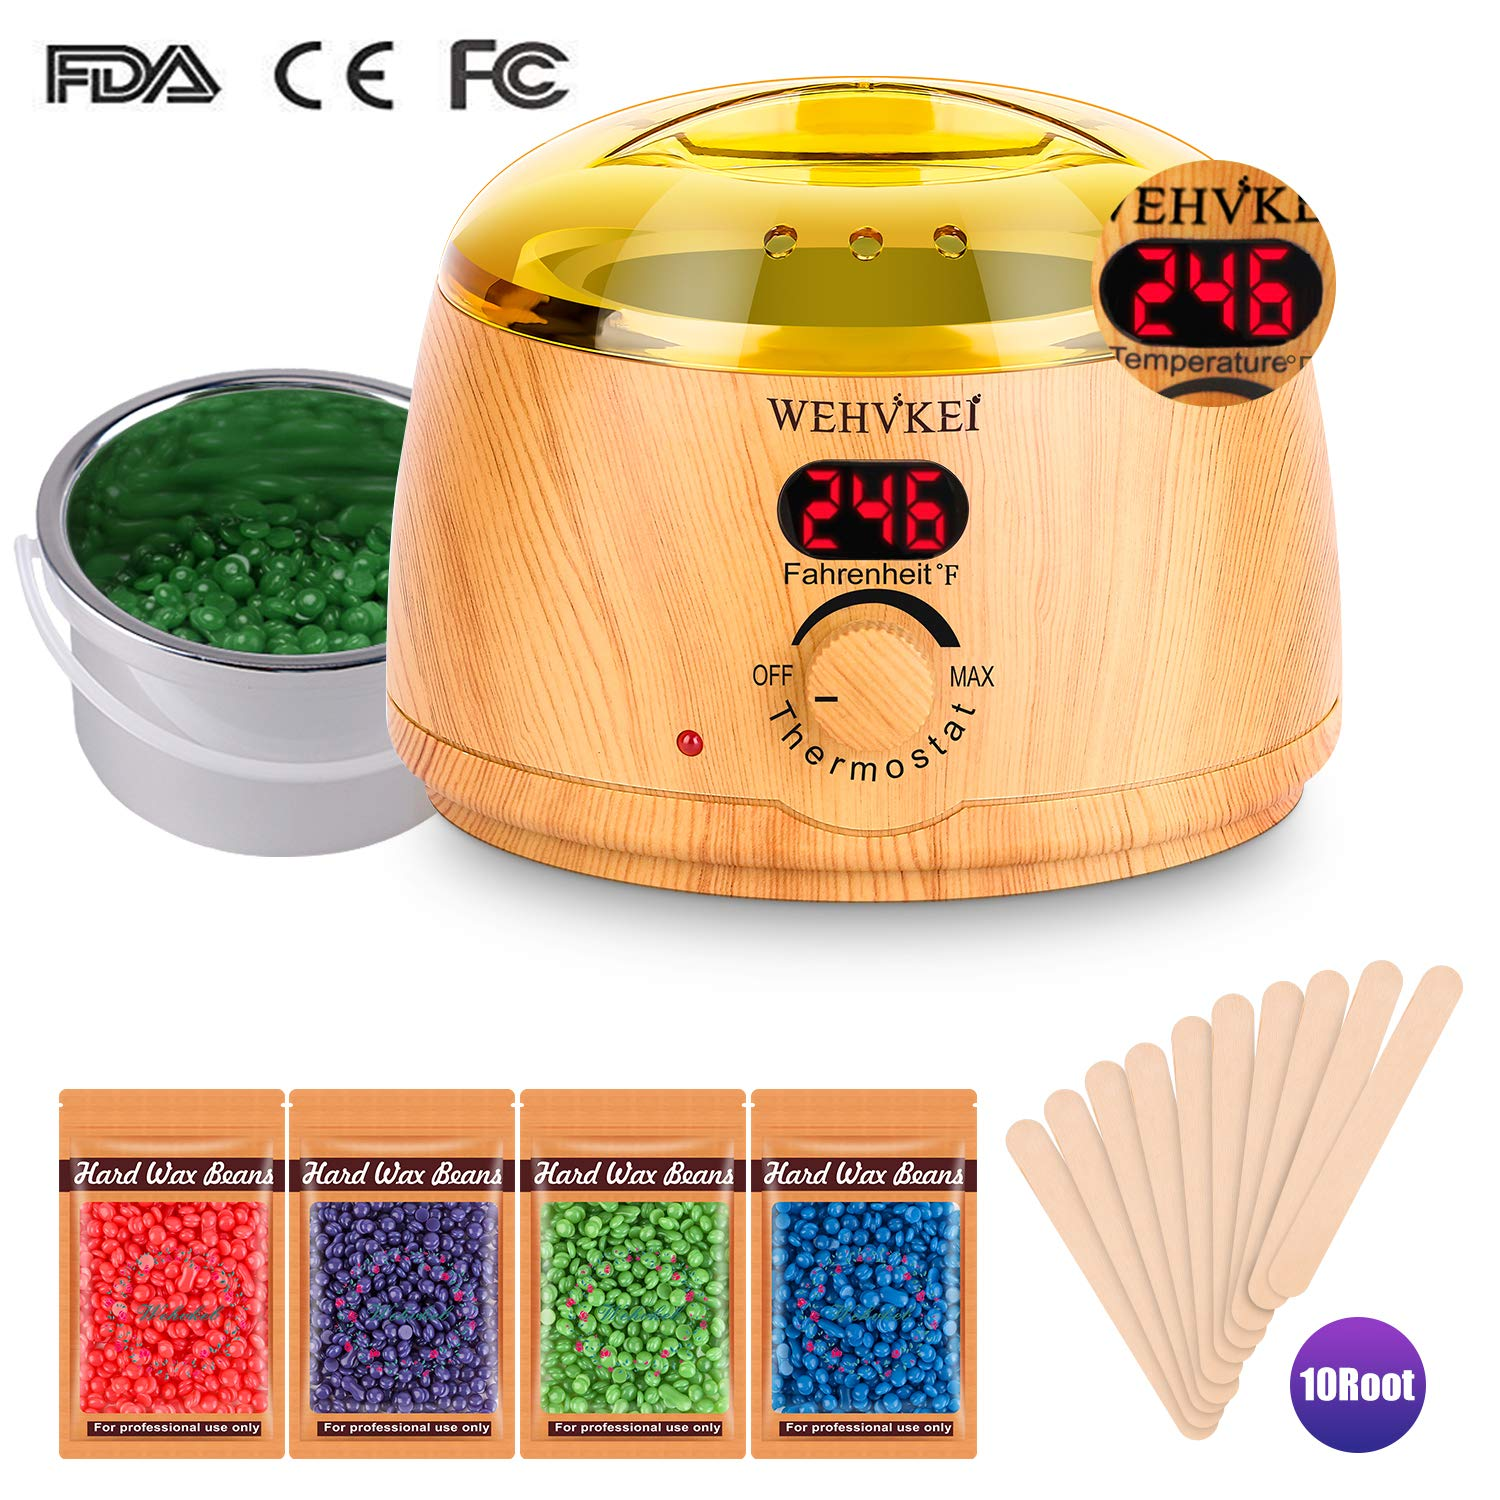 Wax Warmer Brazilian Bikini Waxing Warmer Kit Hair Removal with Digital LCD Display with Temperature Control Waxing Warmer Heater Pot Painless Includes 4-Flavor Wax Beans and 10 Wax Applicator Sticks